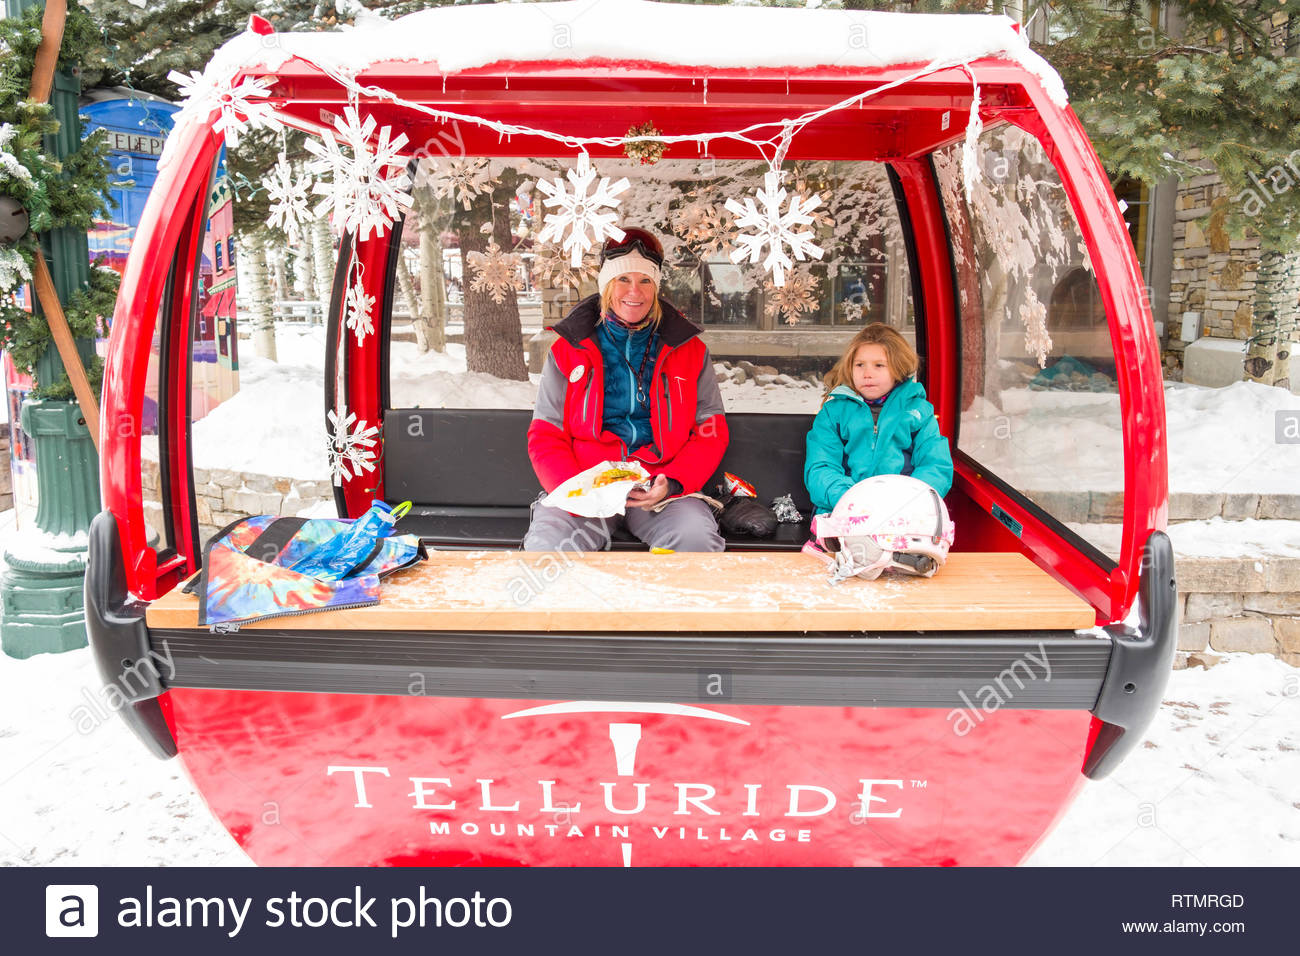 Female ski instructor eating lunch with student in prop gondola, Heritage Plaza, Mountain Village, San Miguel County, Colorado, USA - Stock Image